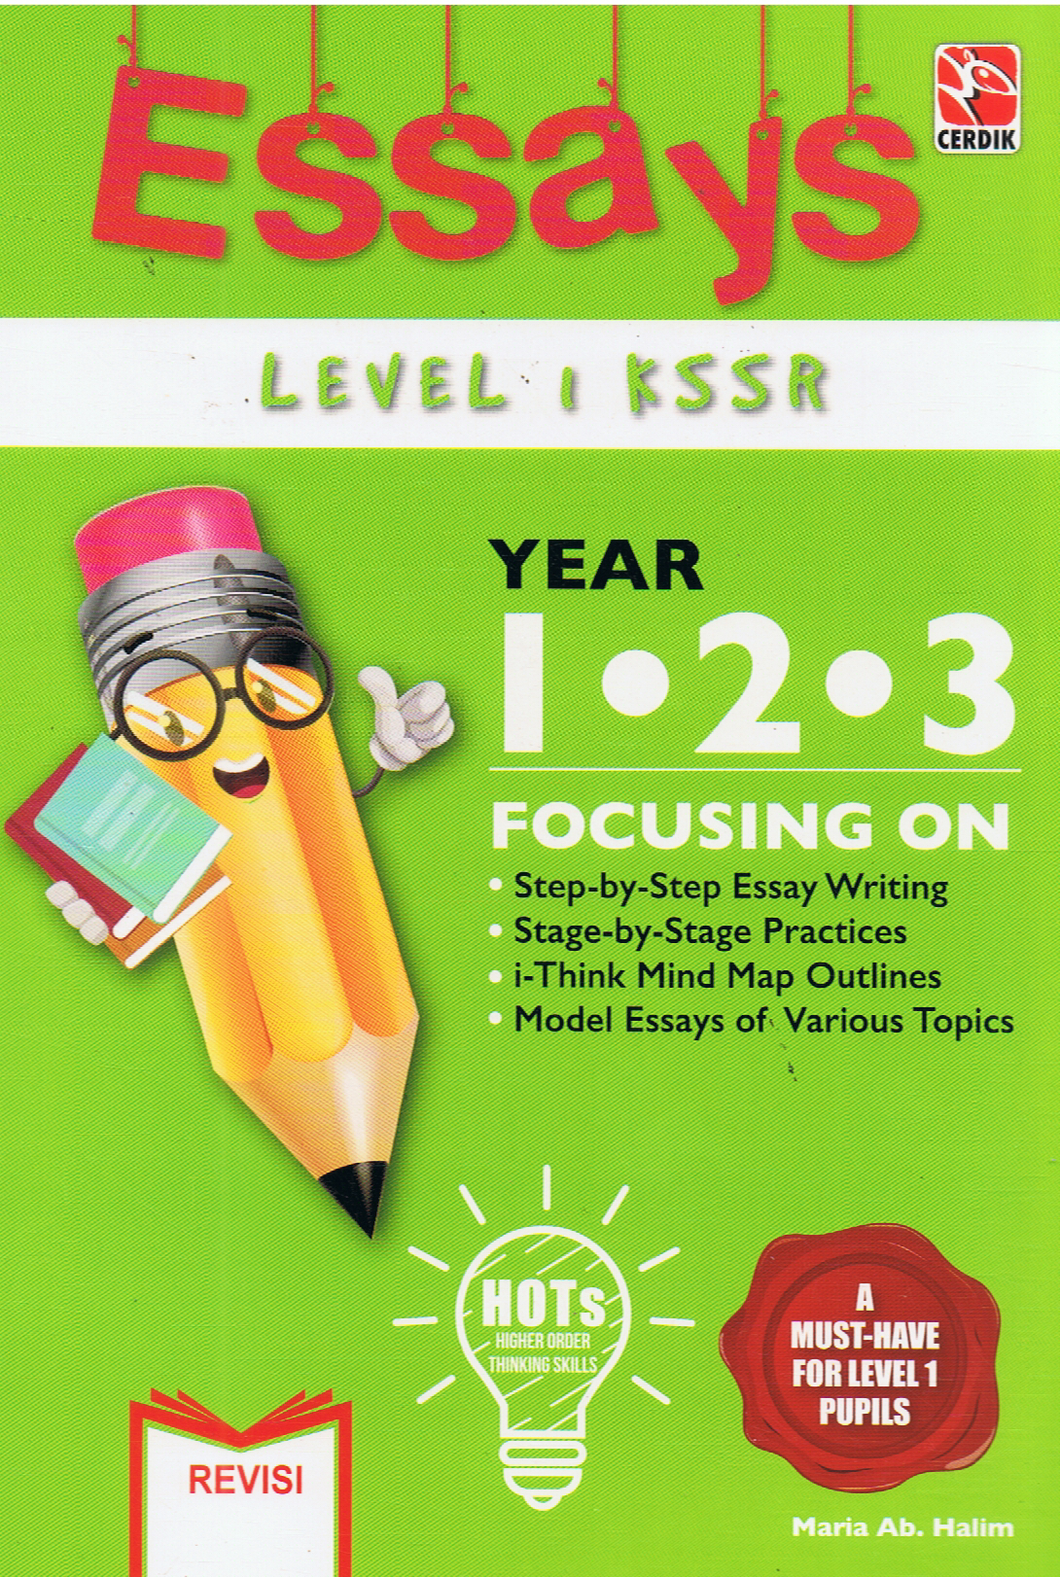 Cerdik-Essays Level 1 KSSR Year 1,2,3-9789837056176-BukuDBP.com